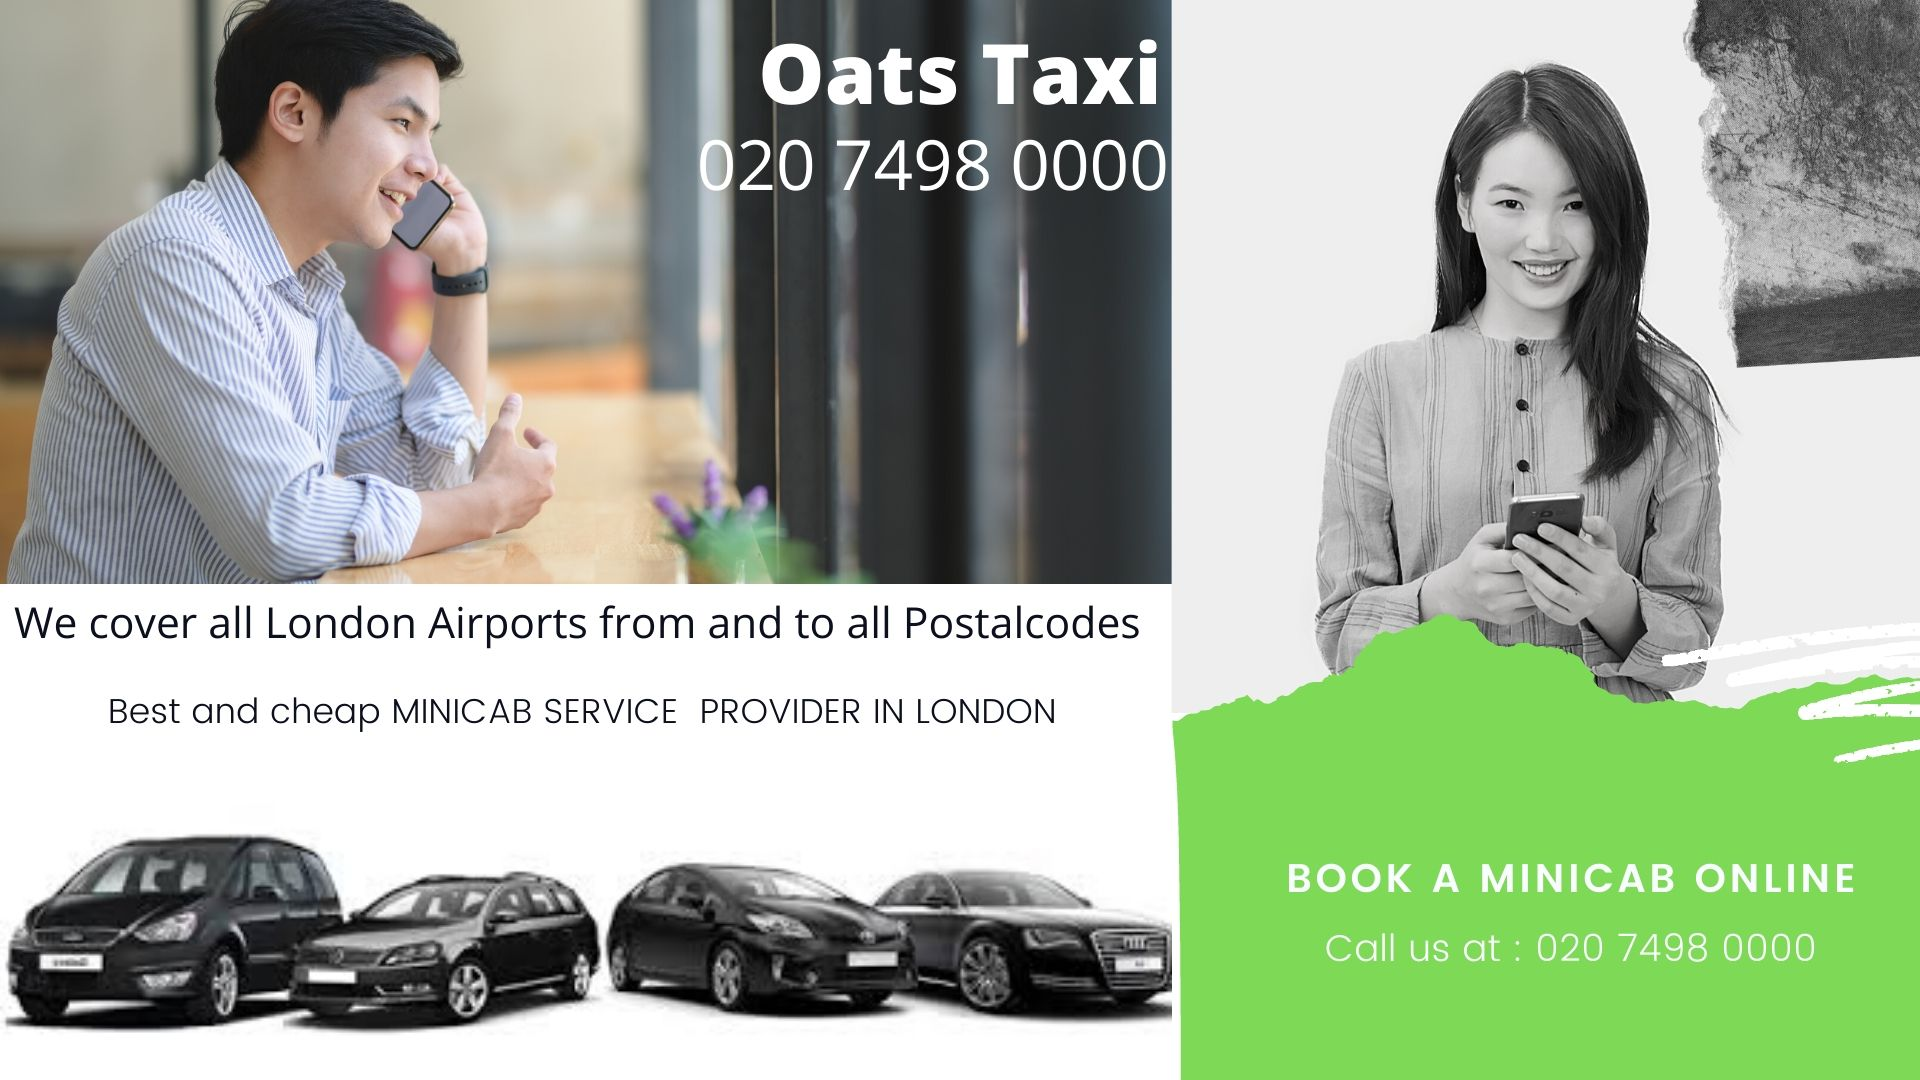 Taxi Office Near CHESNEY STREET, Battersea SW11, Taxi From Battersea SW11 To Gatwick Airport